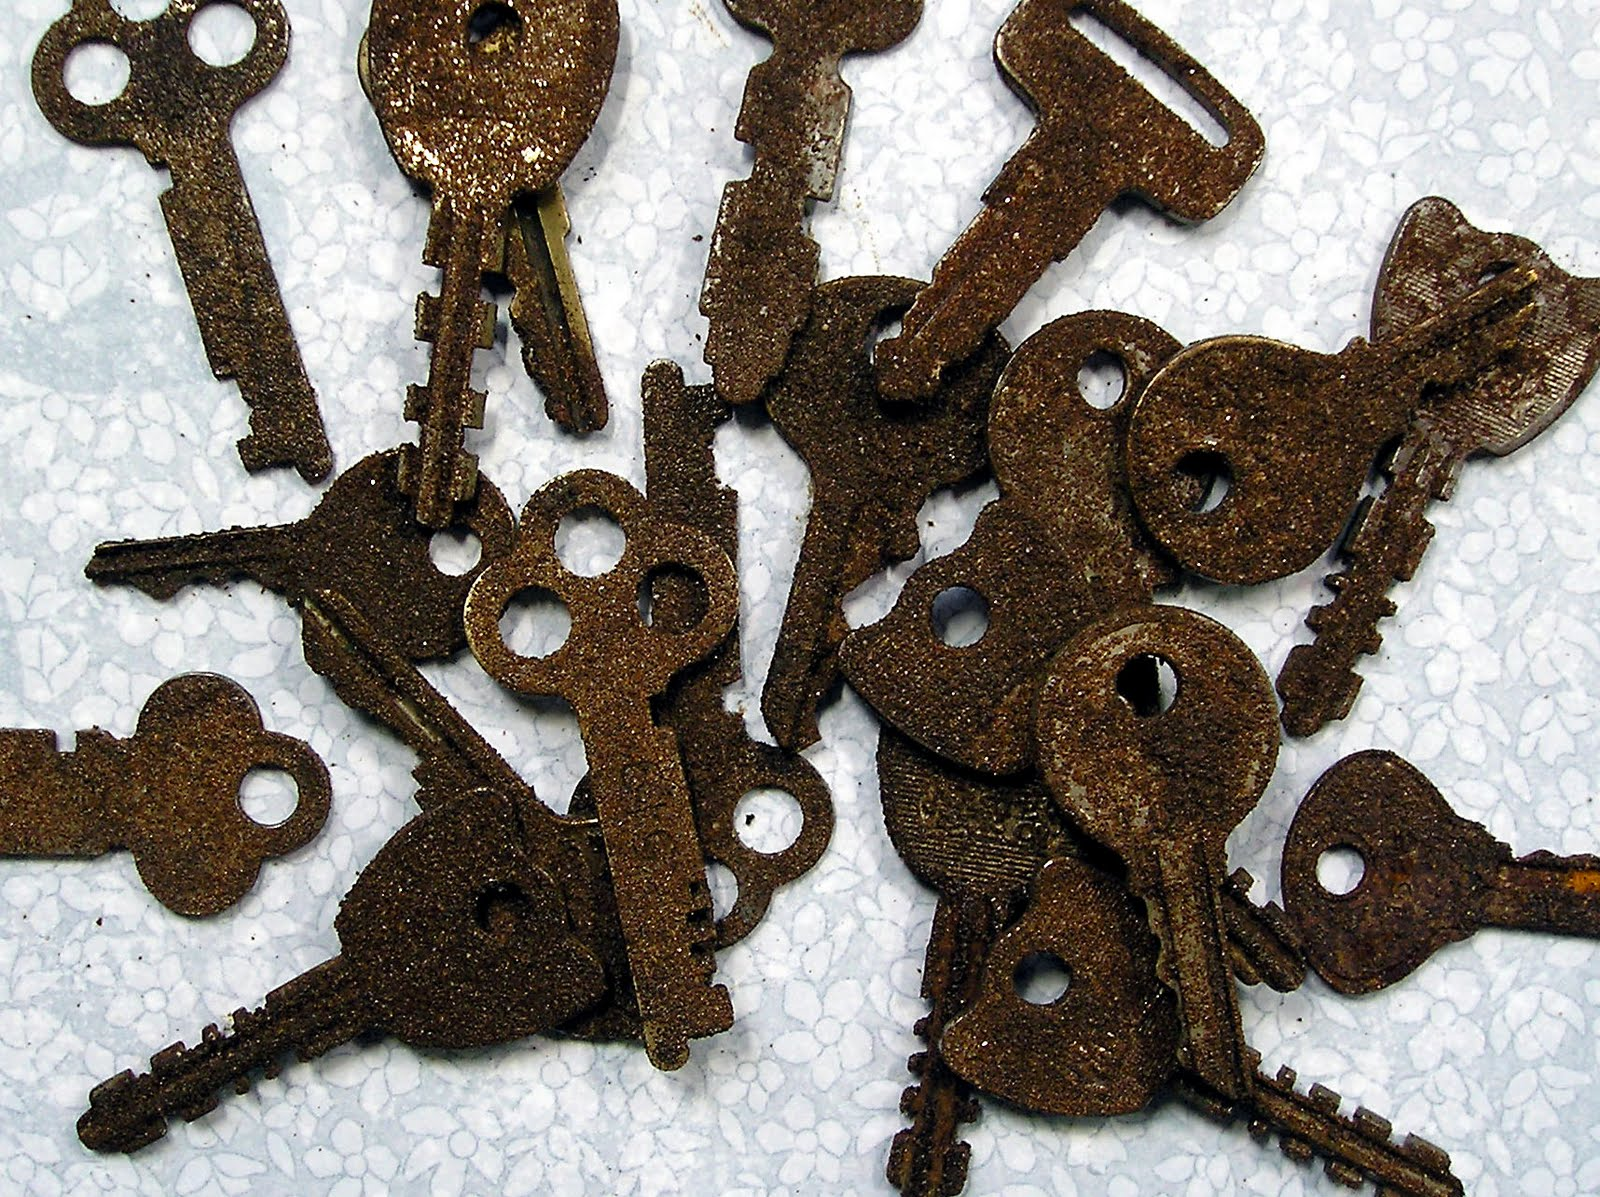 Dr house cleaning how to remove rust from old keys for Classic house keys